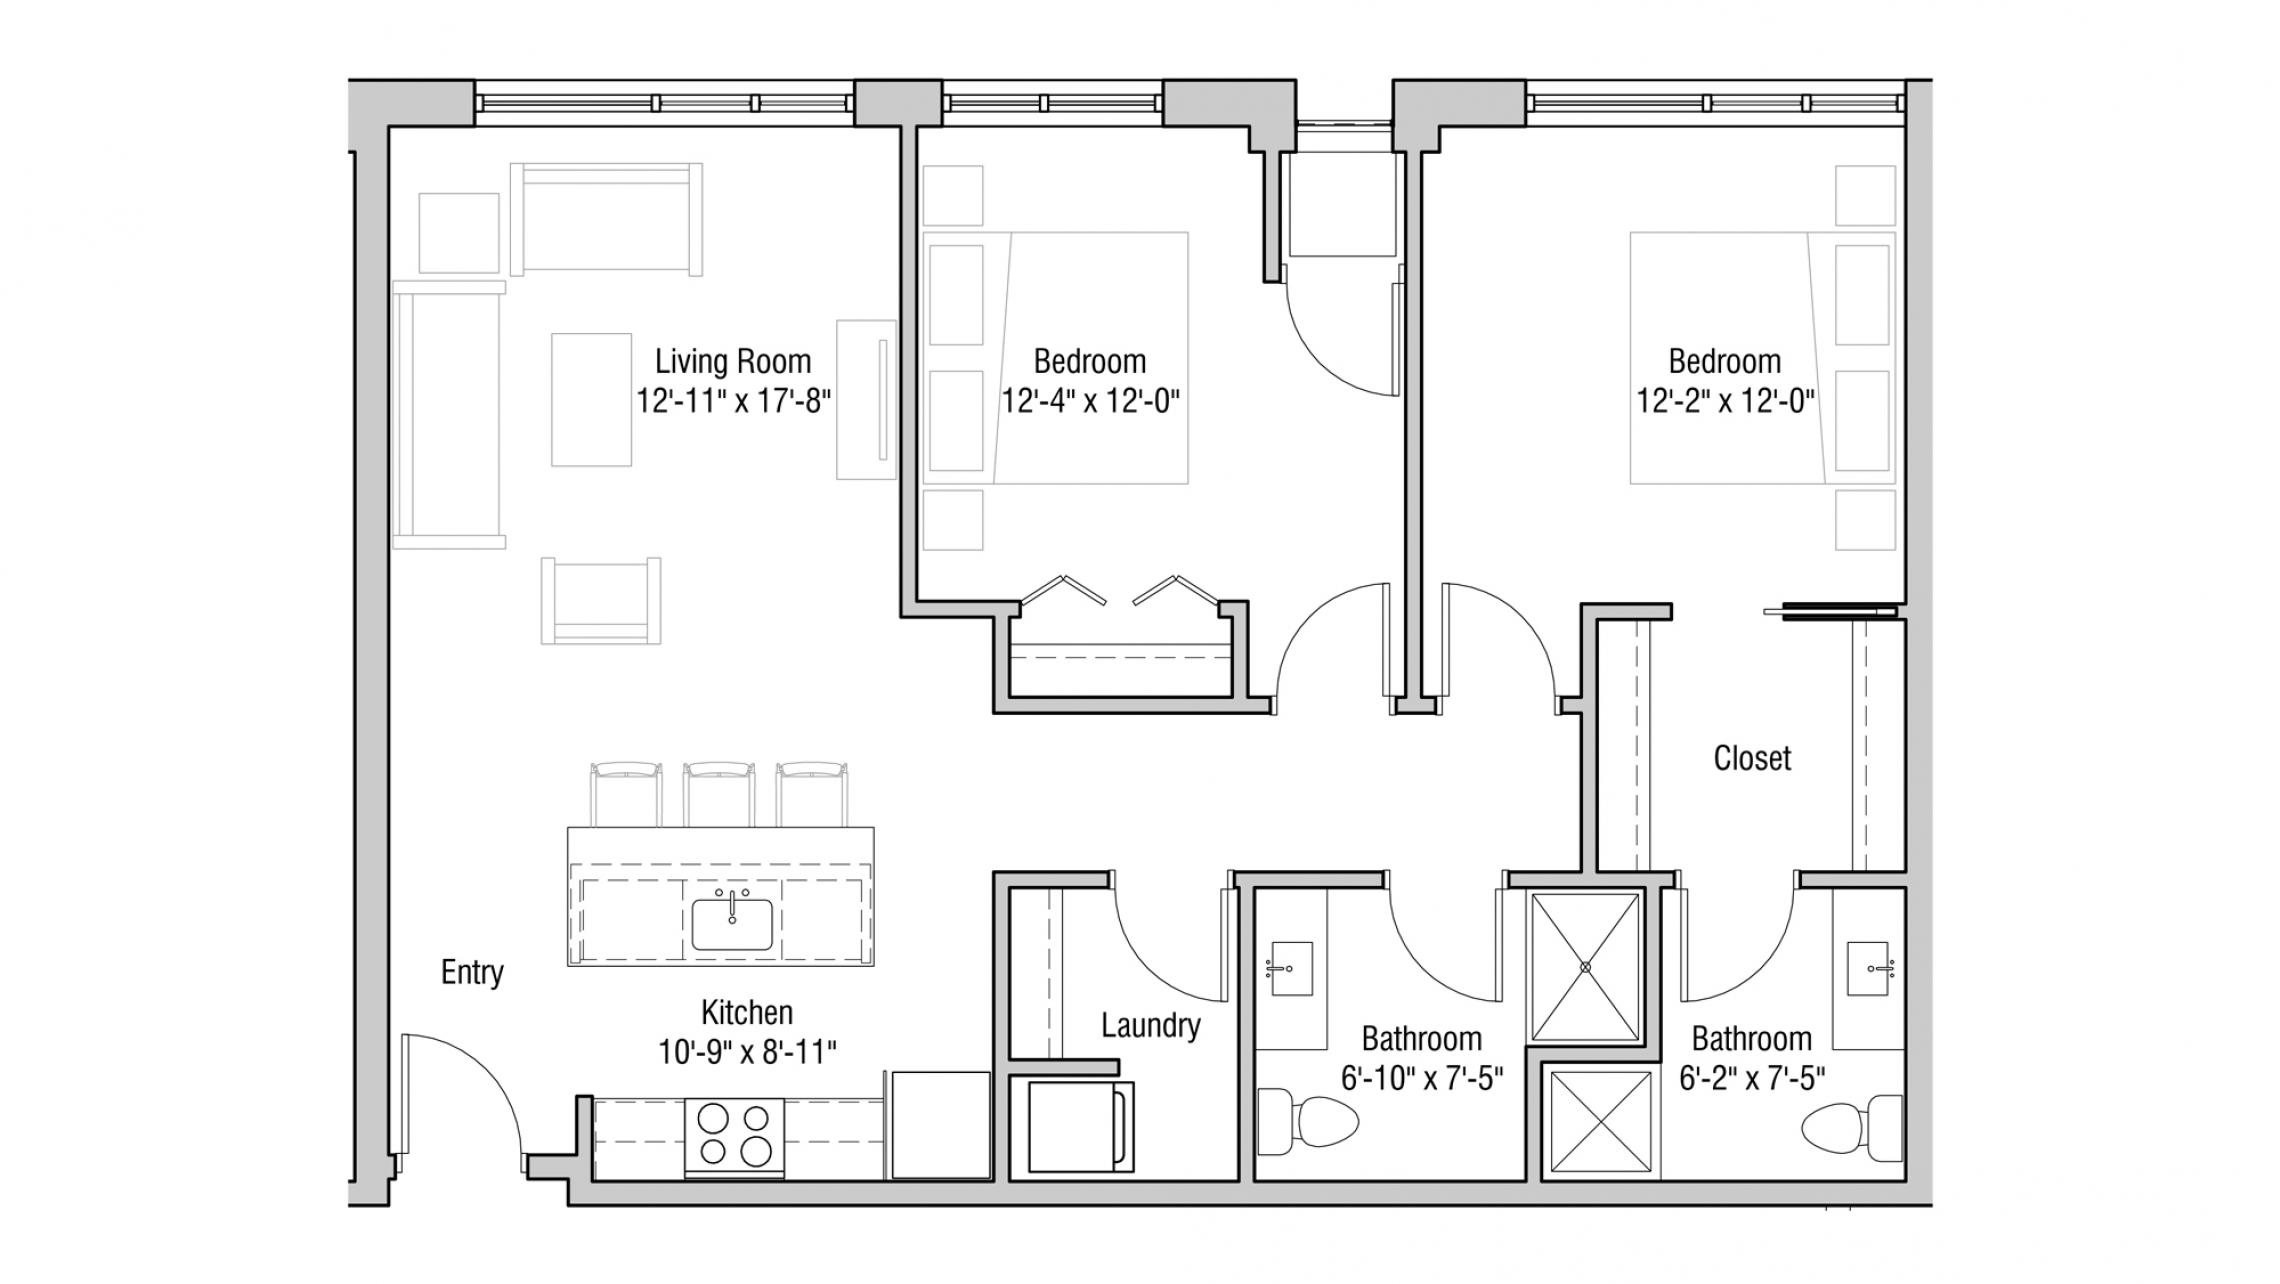 ULI Quarter Row 217 - Three Bedroom, Three Bathroom